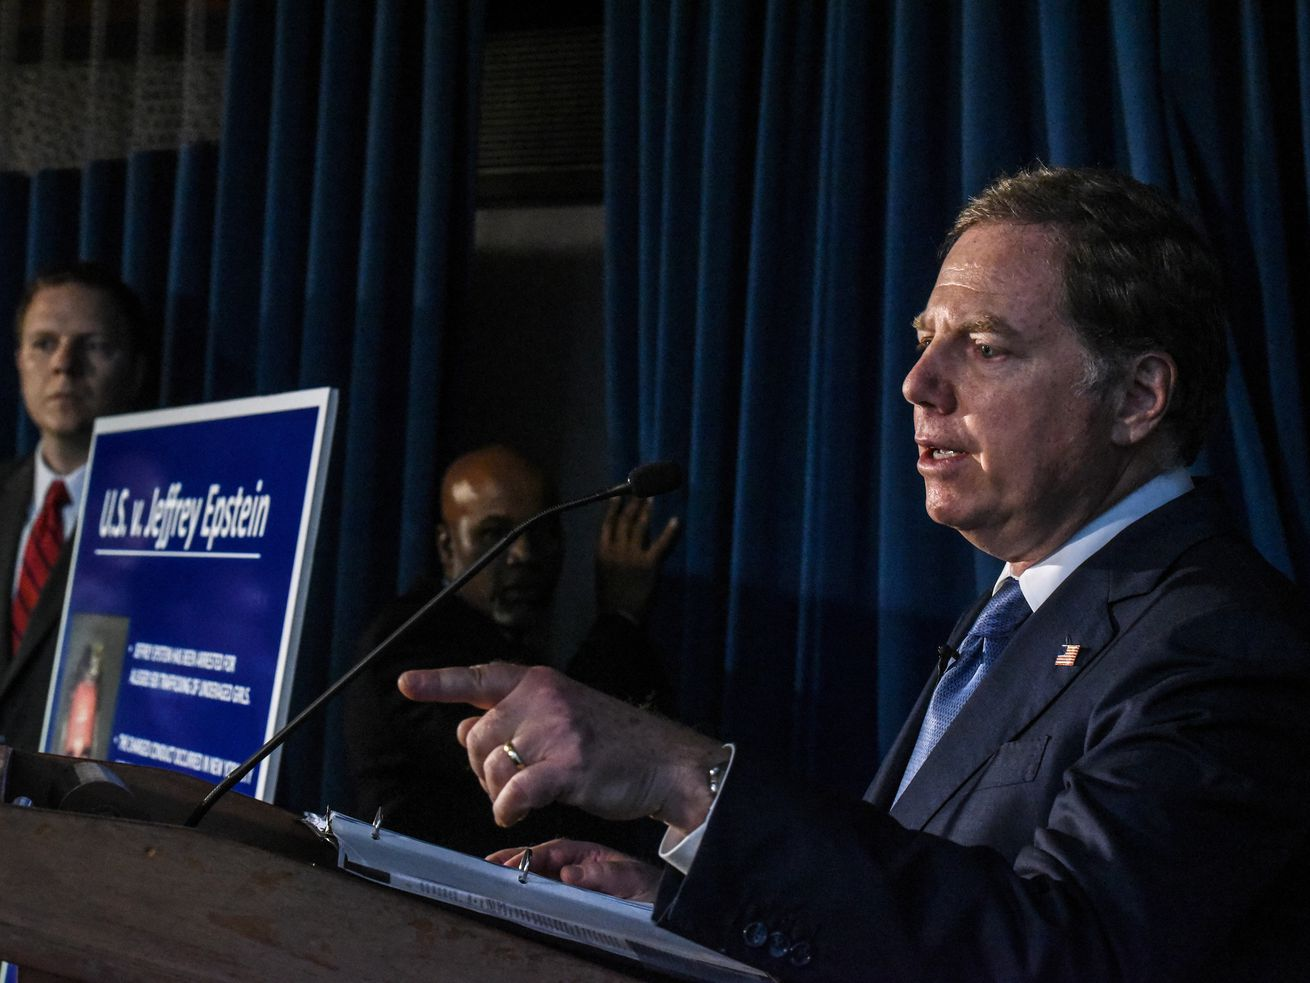 US Attorney for the Southern District of New York Geoffrey Berman announces charges against financier Jeffery Epstein on July 8, 2019, in New York City.